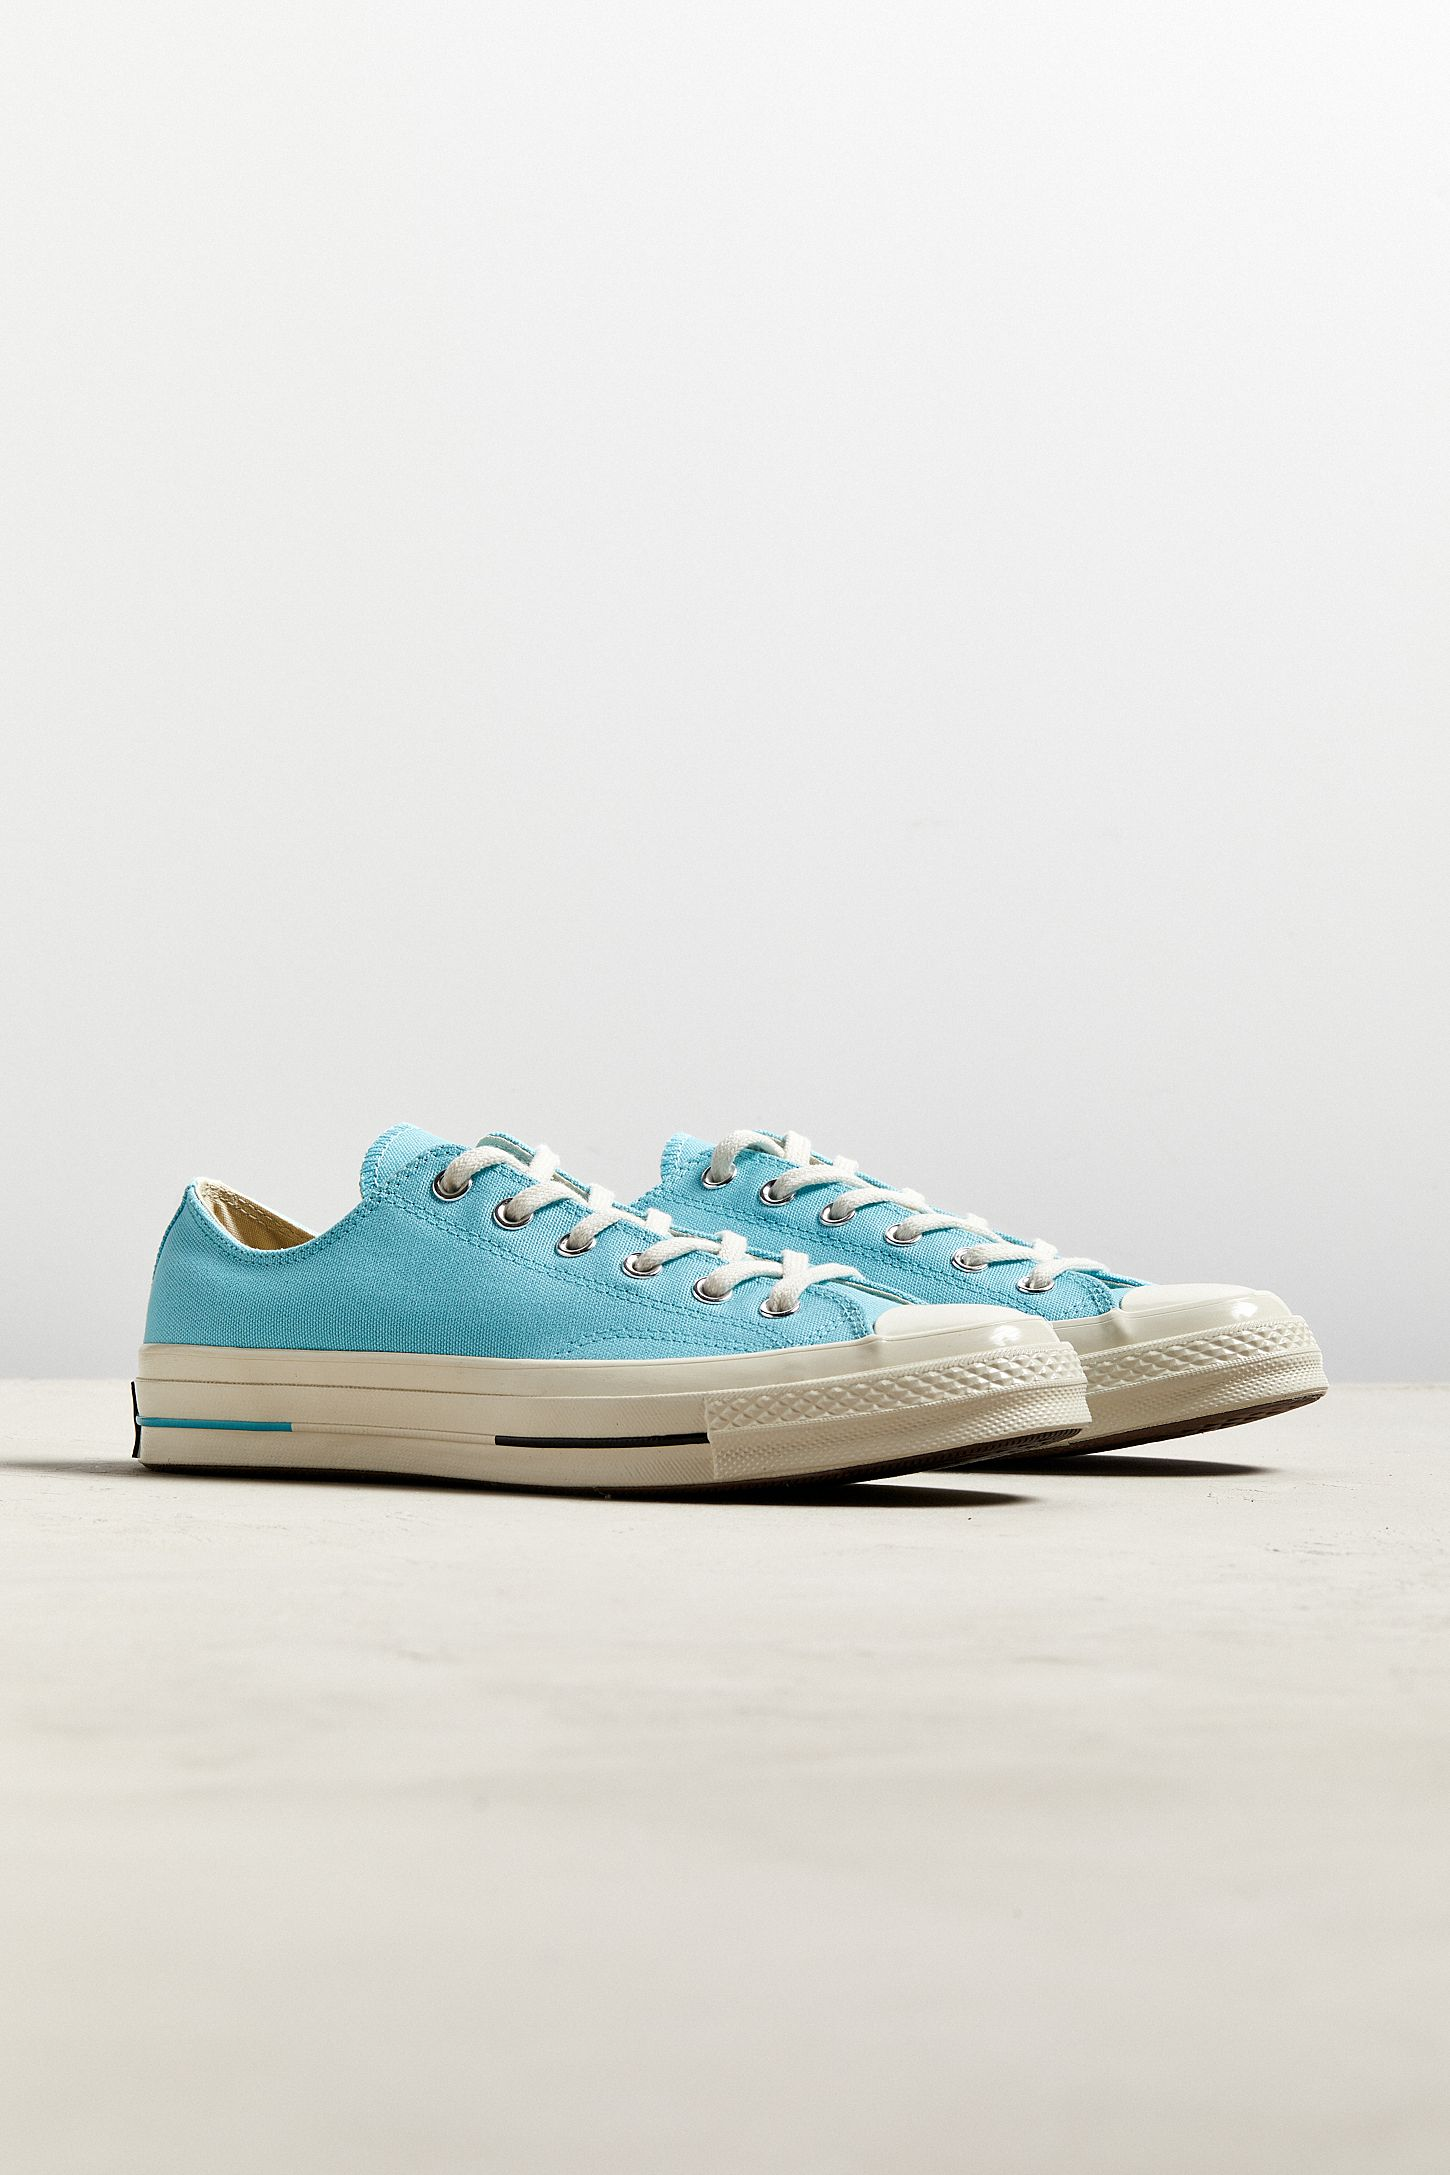 9eaf0721a532 Converse Chuck Taylor 70 OX Canvas Sneaker. Tap image to zoom. Hover to  zoom. Double Tap to Zoom